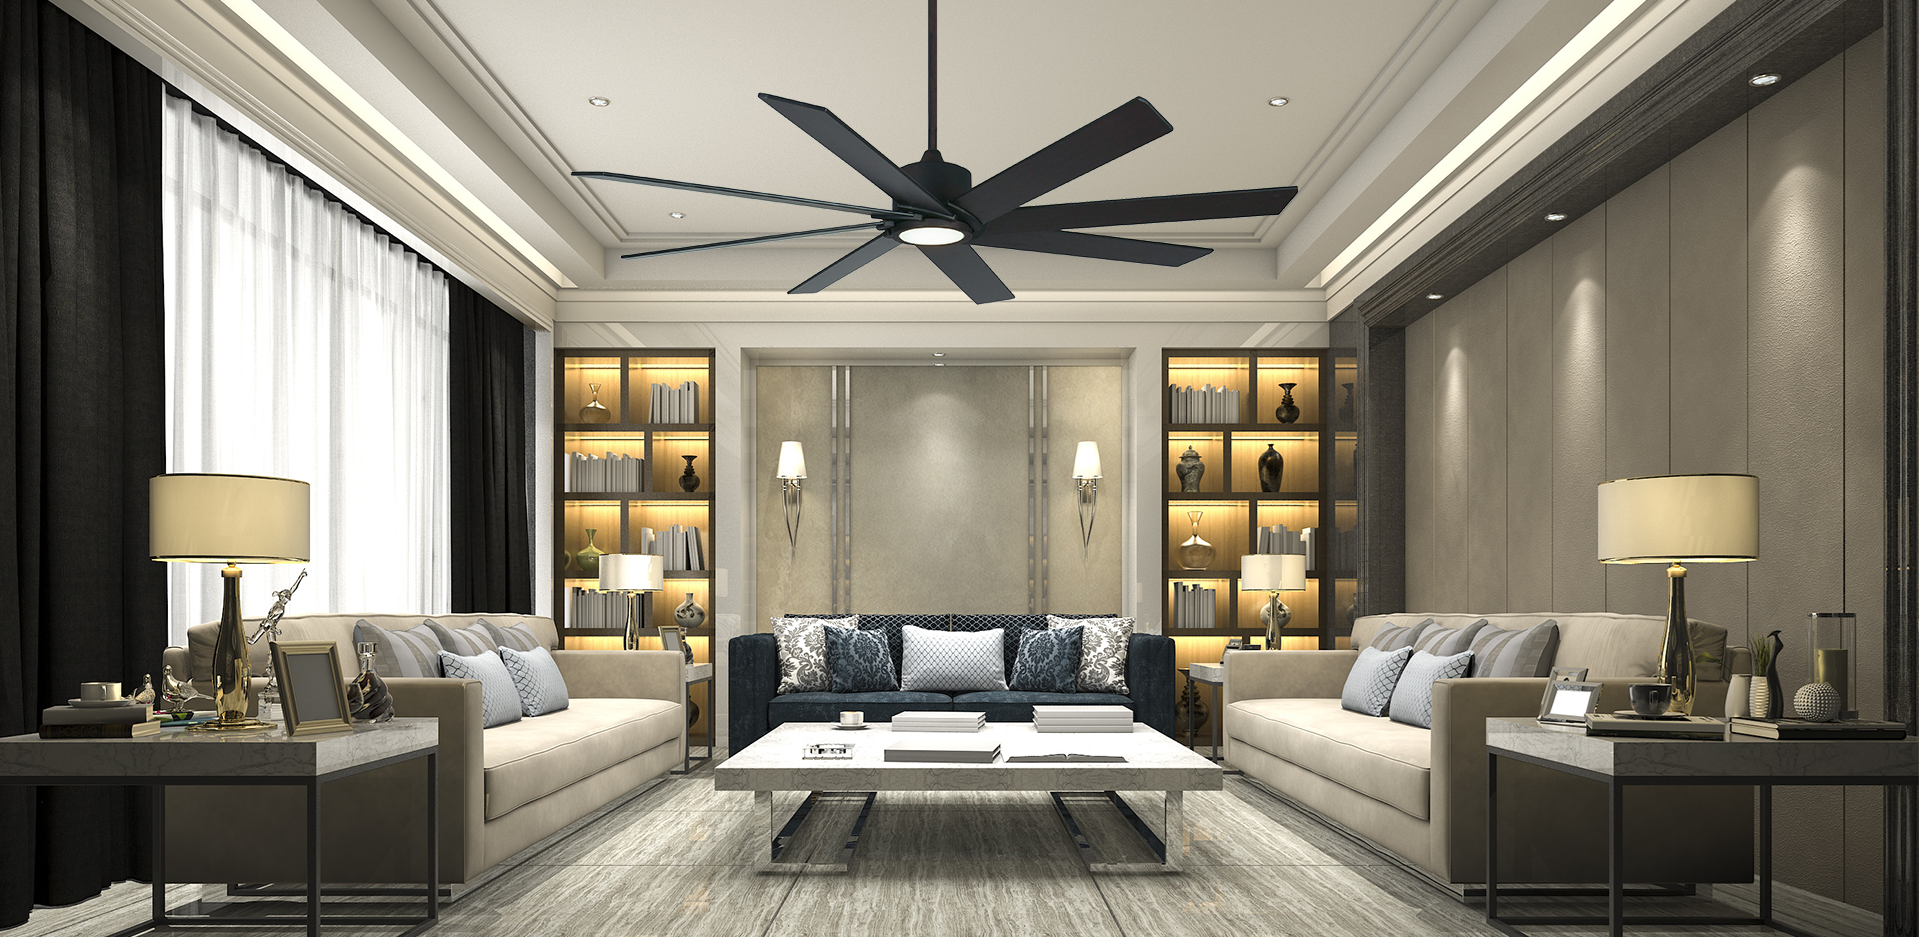 Dan S Fan City Ceiling Fans